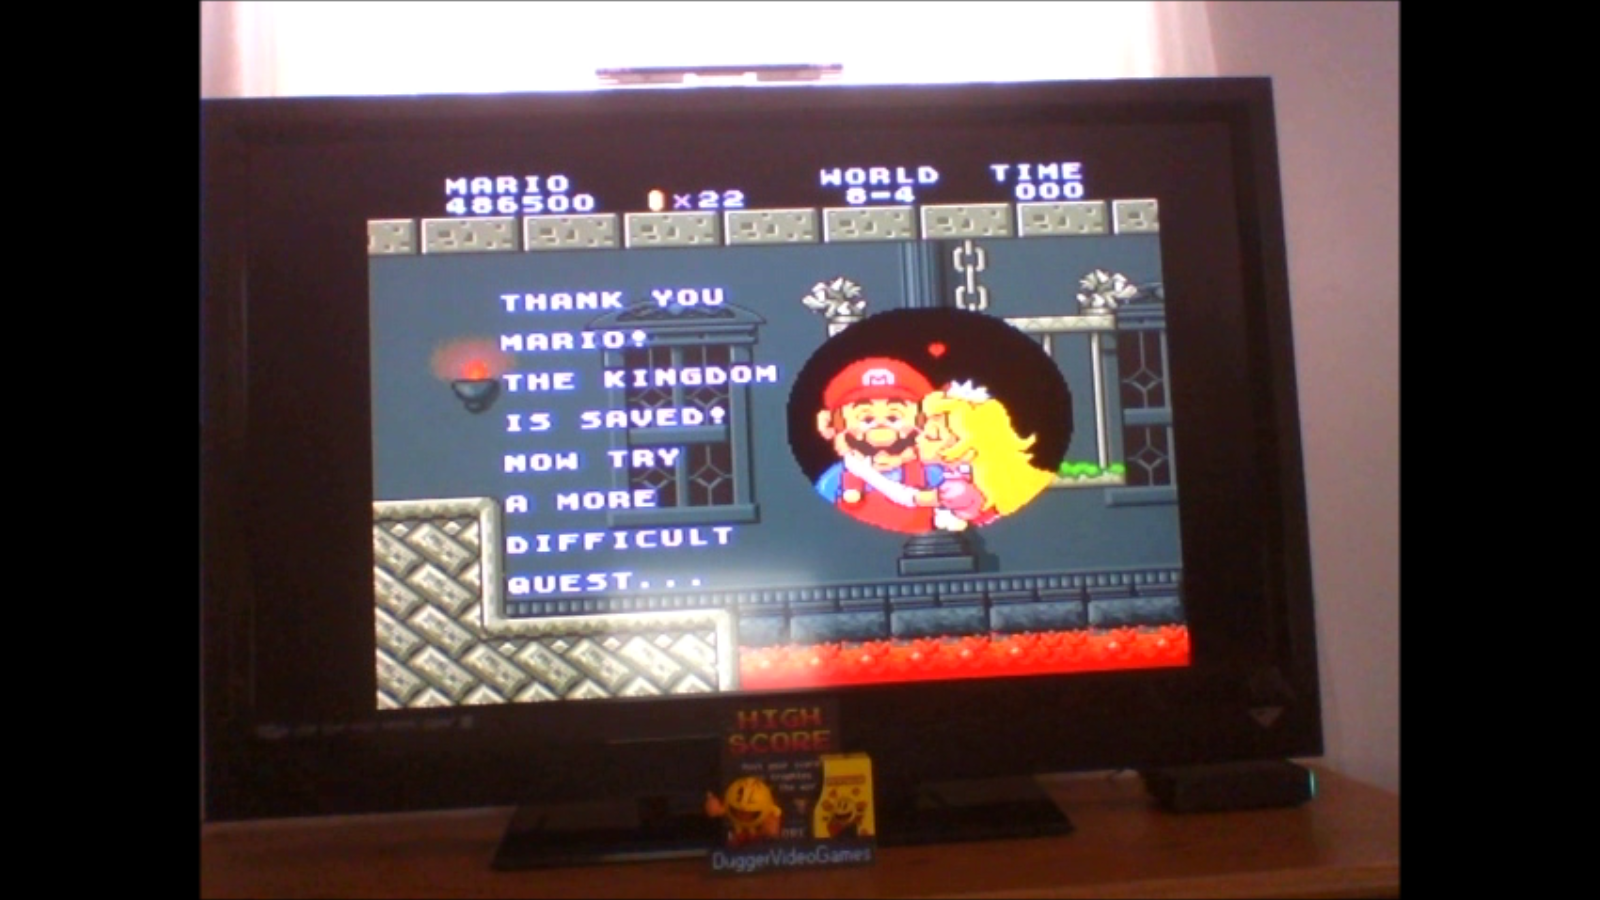 DuggerVideoGames: Super Mario All-Stars: Super Mario Bros (SNES/Super Famicom Emulated) 486,500 points on 2017-01-29 13:52:55